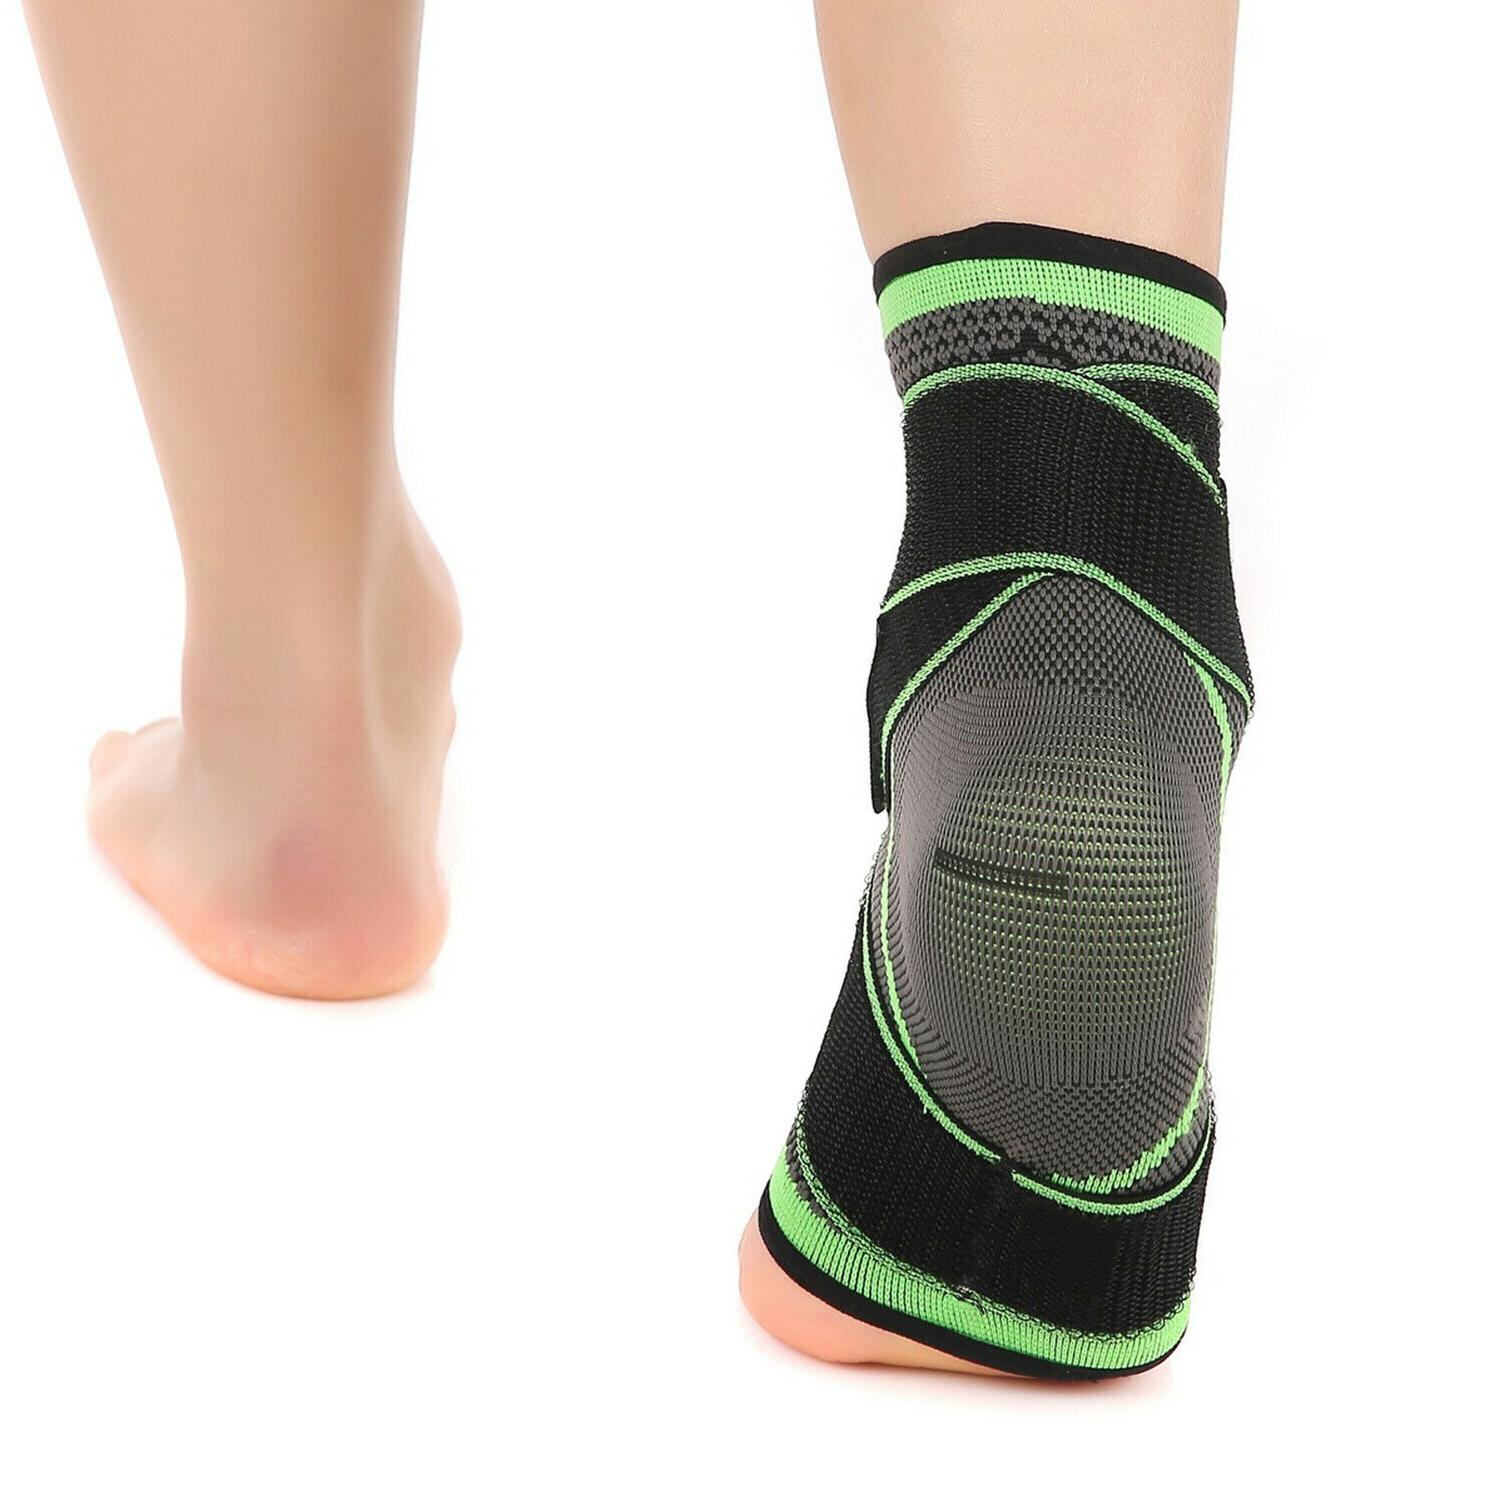 2 Ankle Support Sock Plantar Pain Relief Wrap